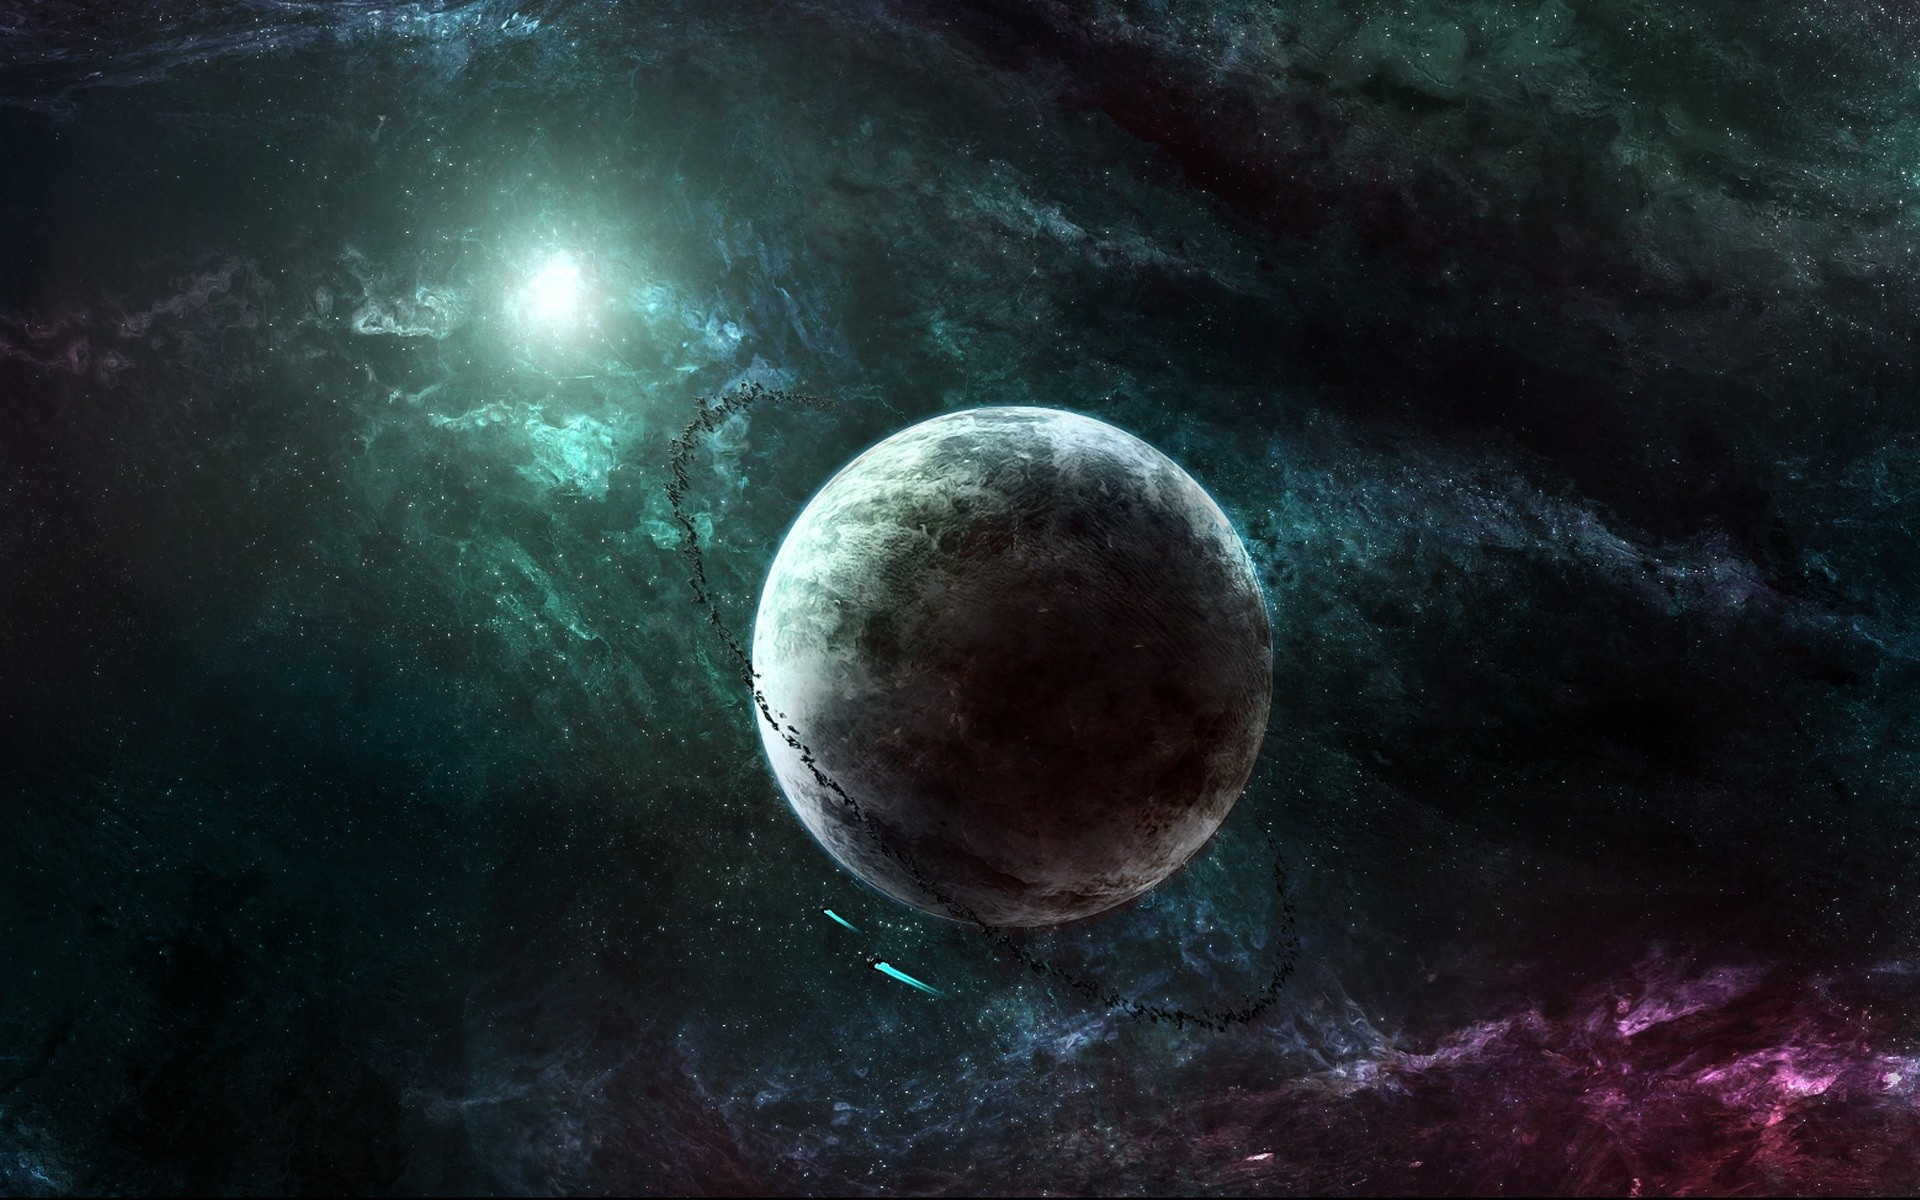 Outer space stars planets rings spaceships asteroids ...